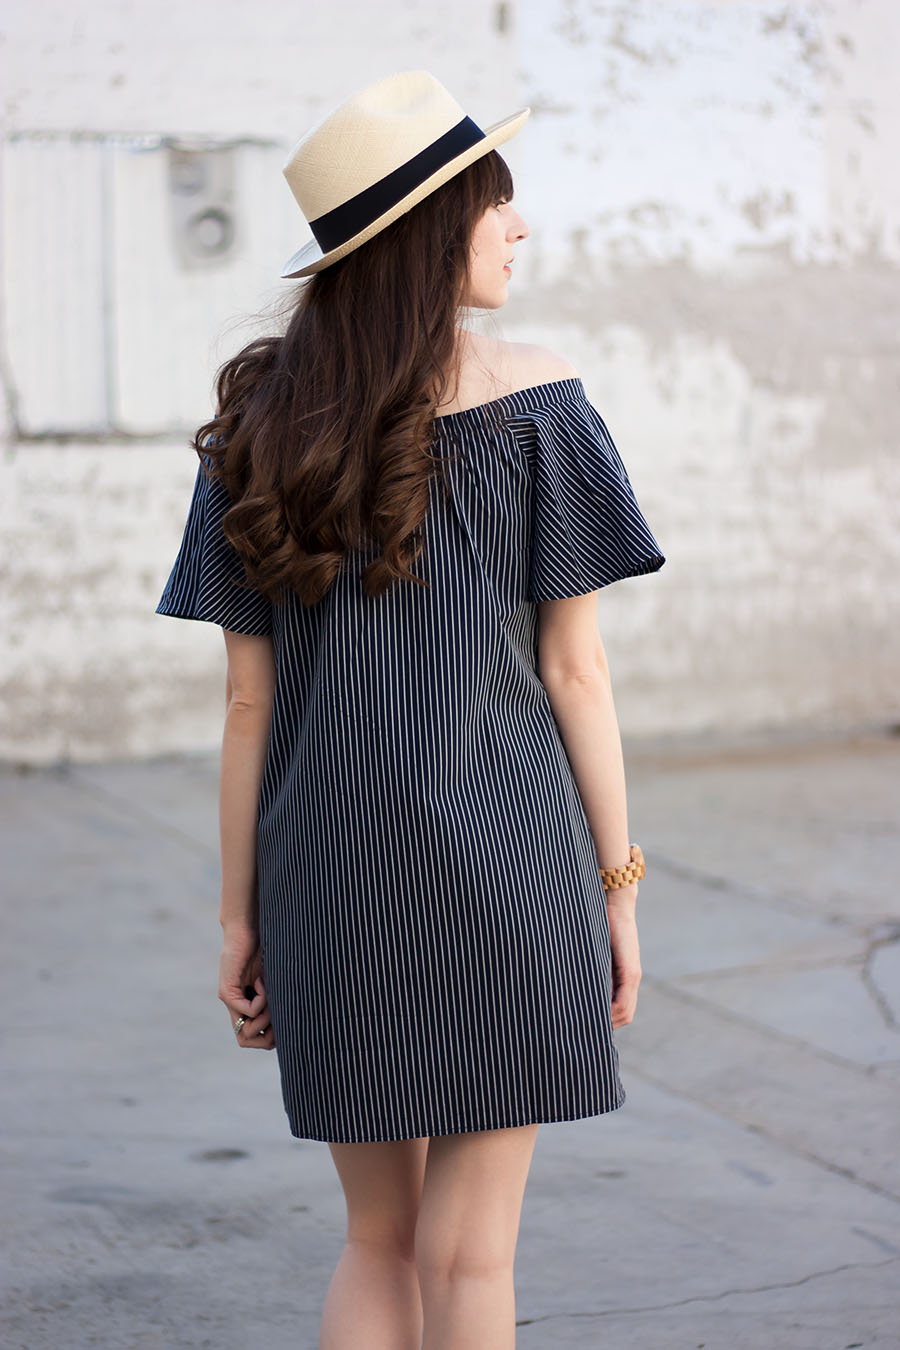 Off the Shoulder Dress, Banana Republic Dress